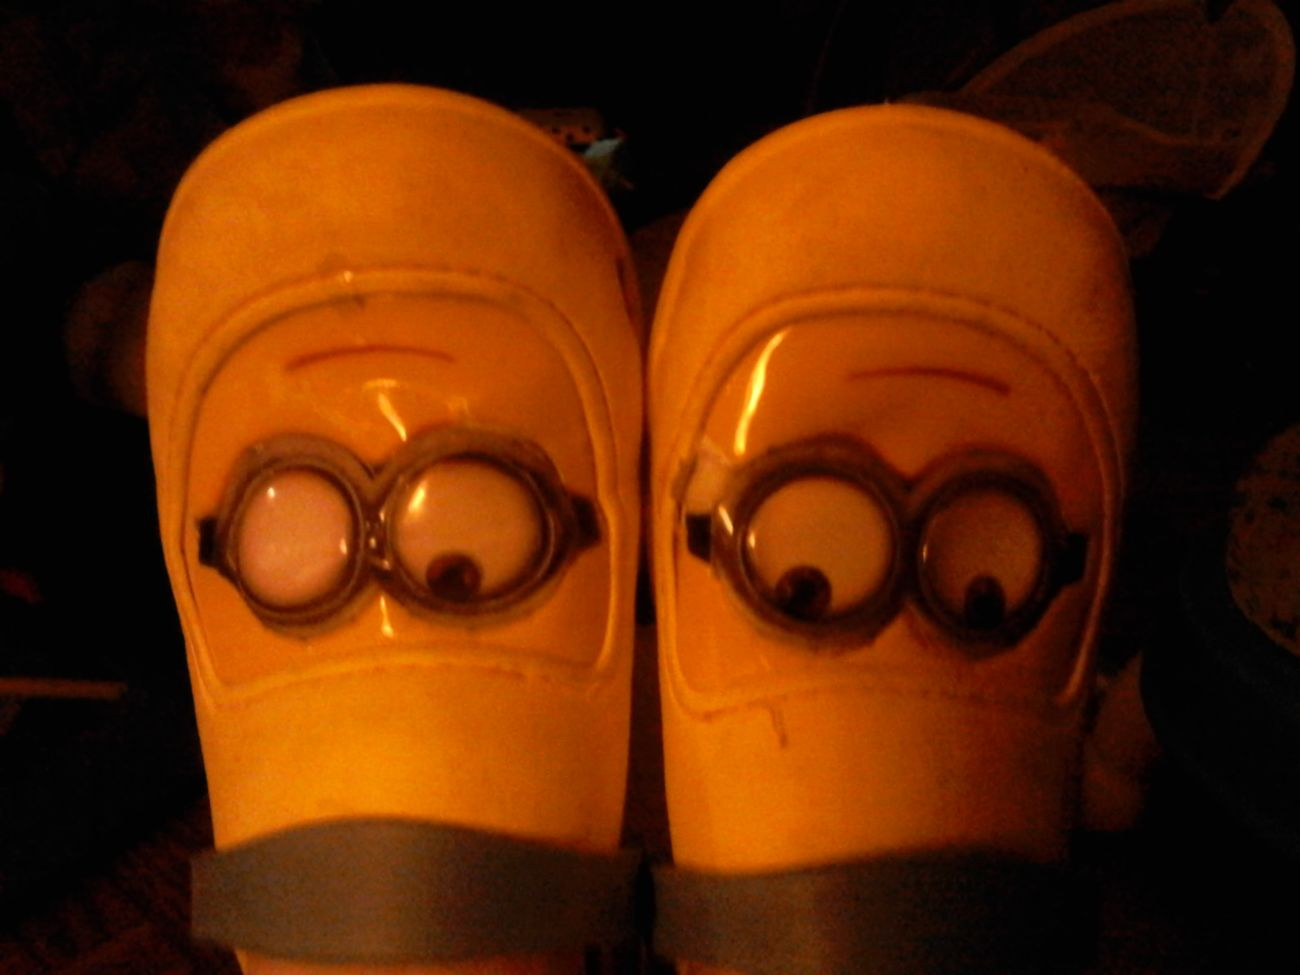 Floortraits Minion's Eyes Minion Shoes